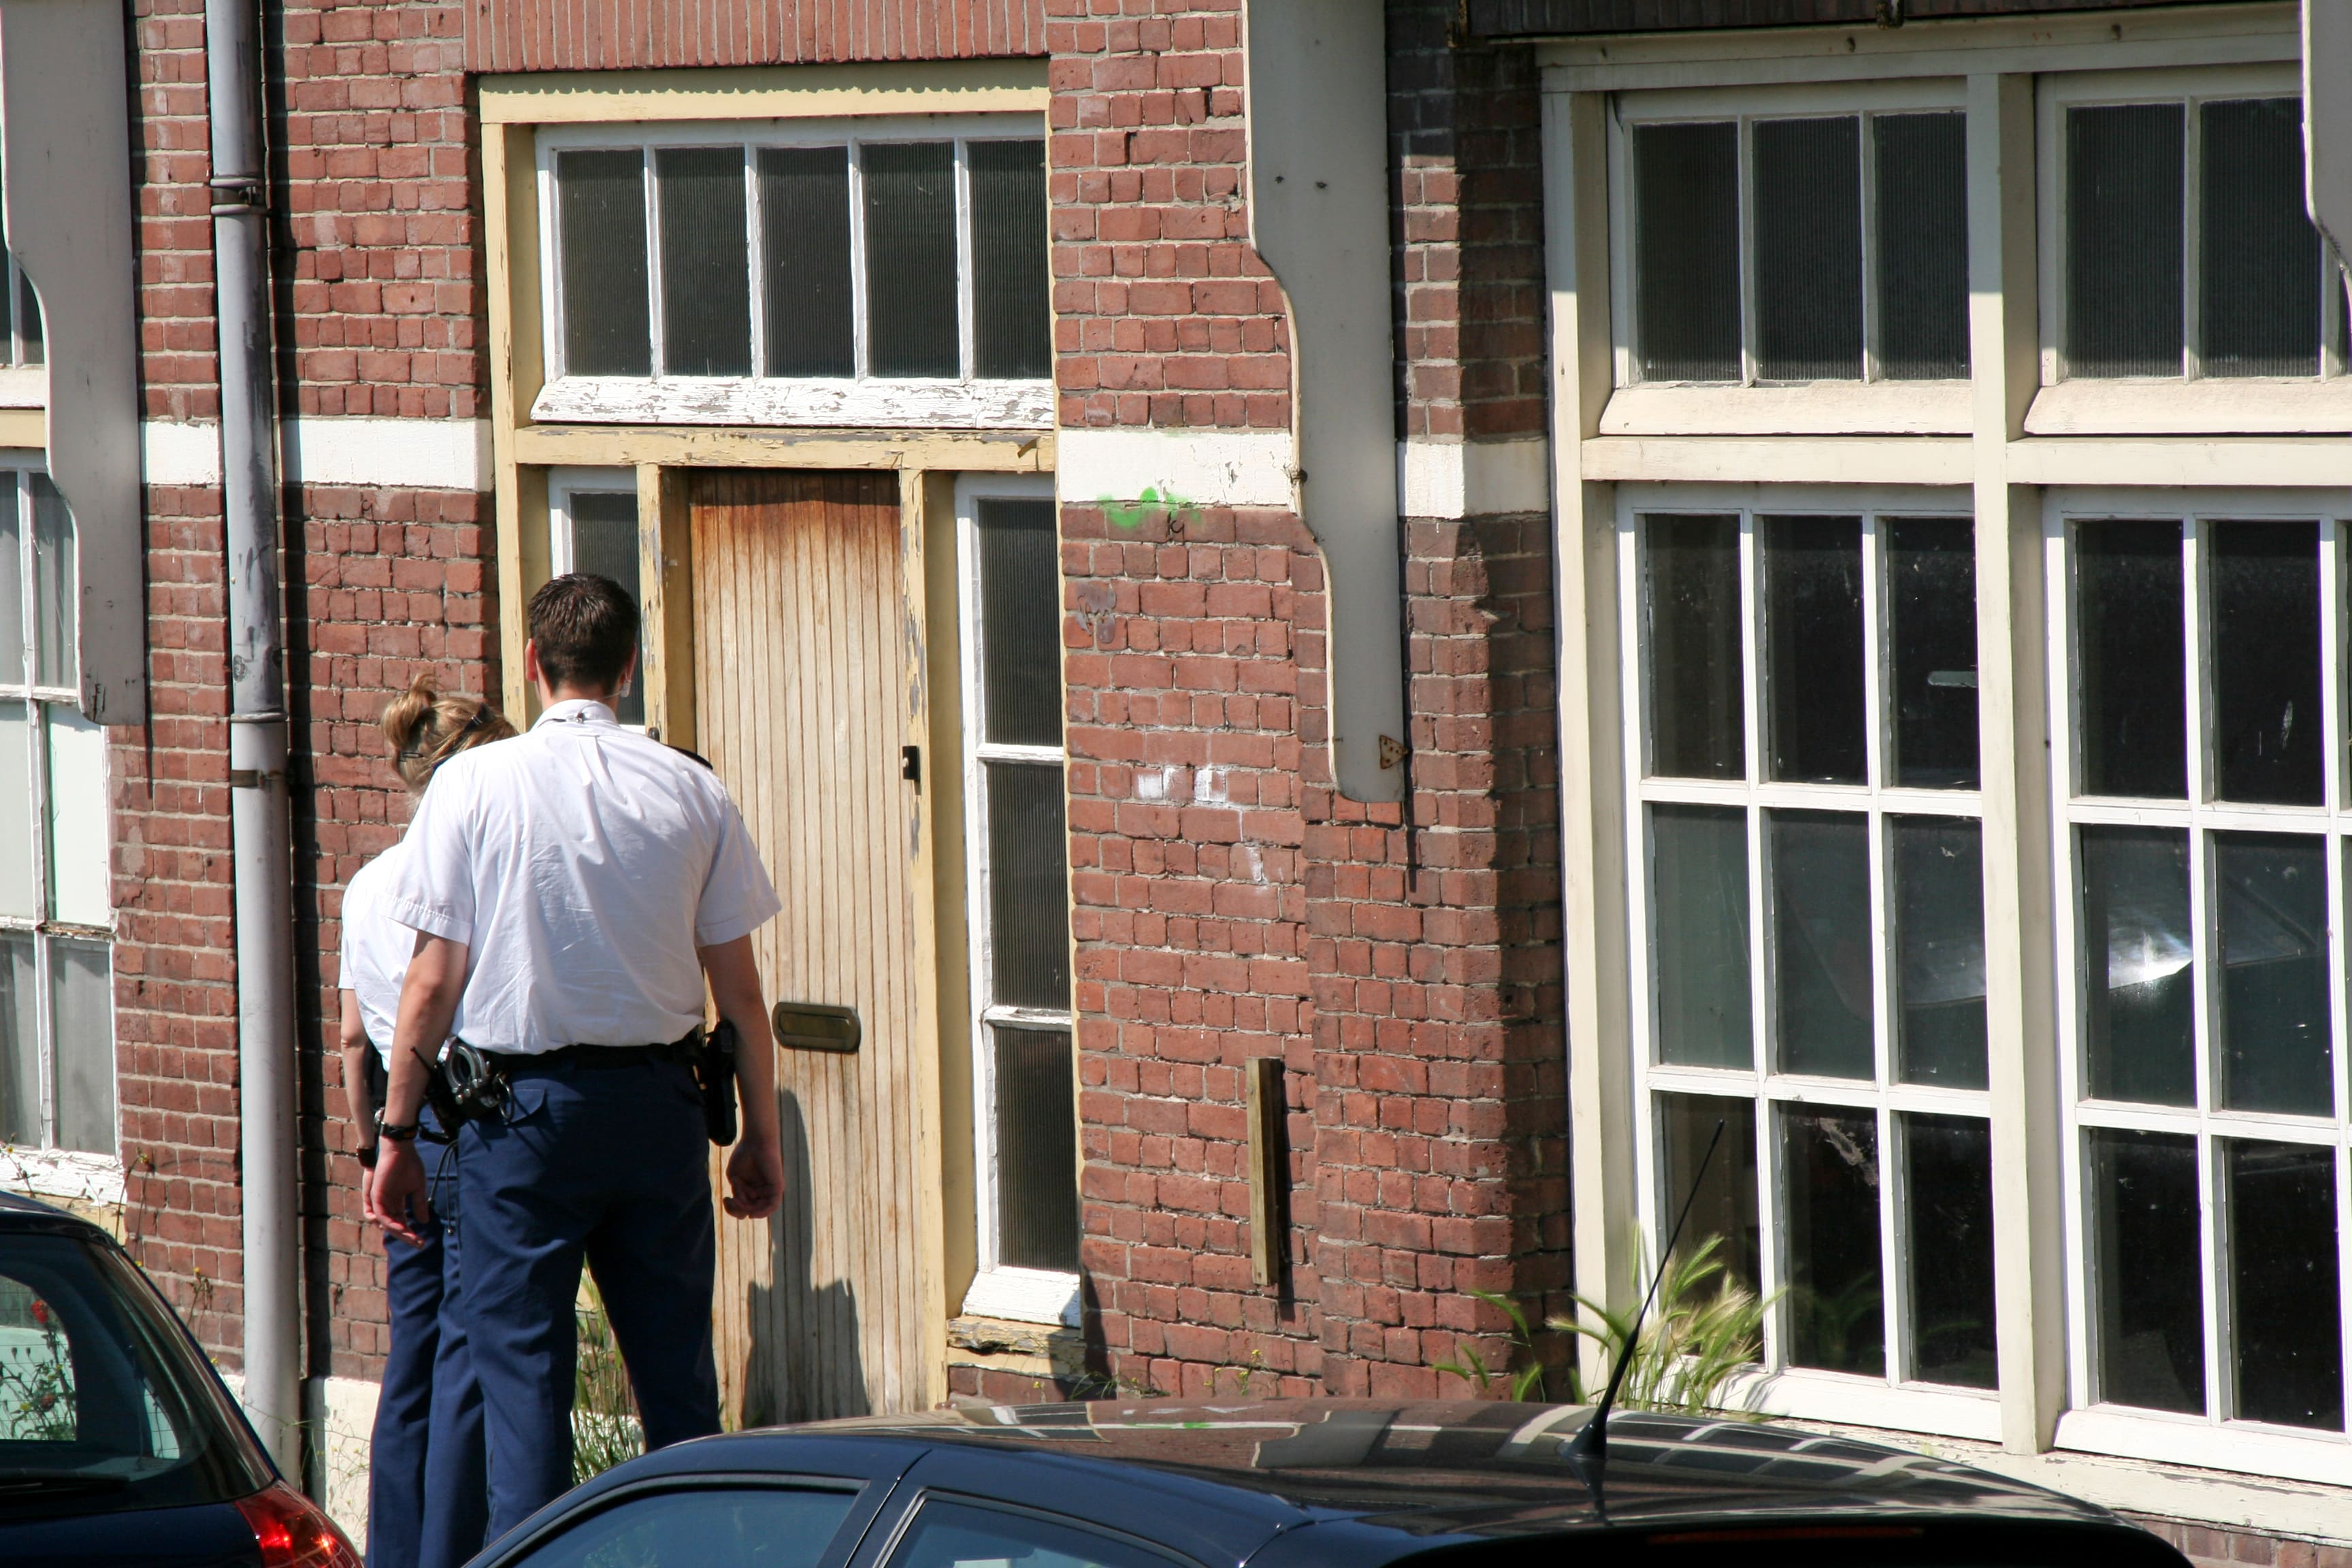 London housing officers to work with Home Office on anti-gang 'enforcement action'